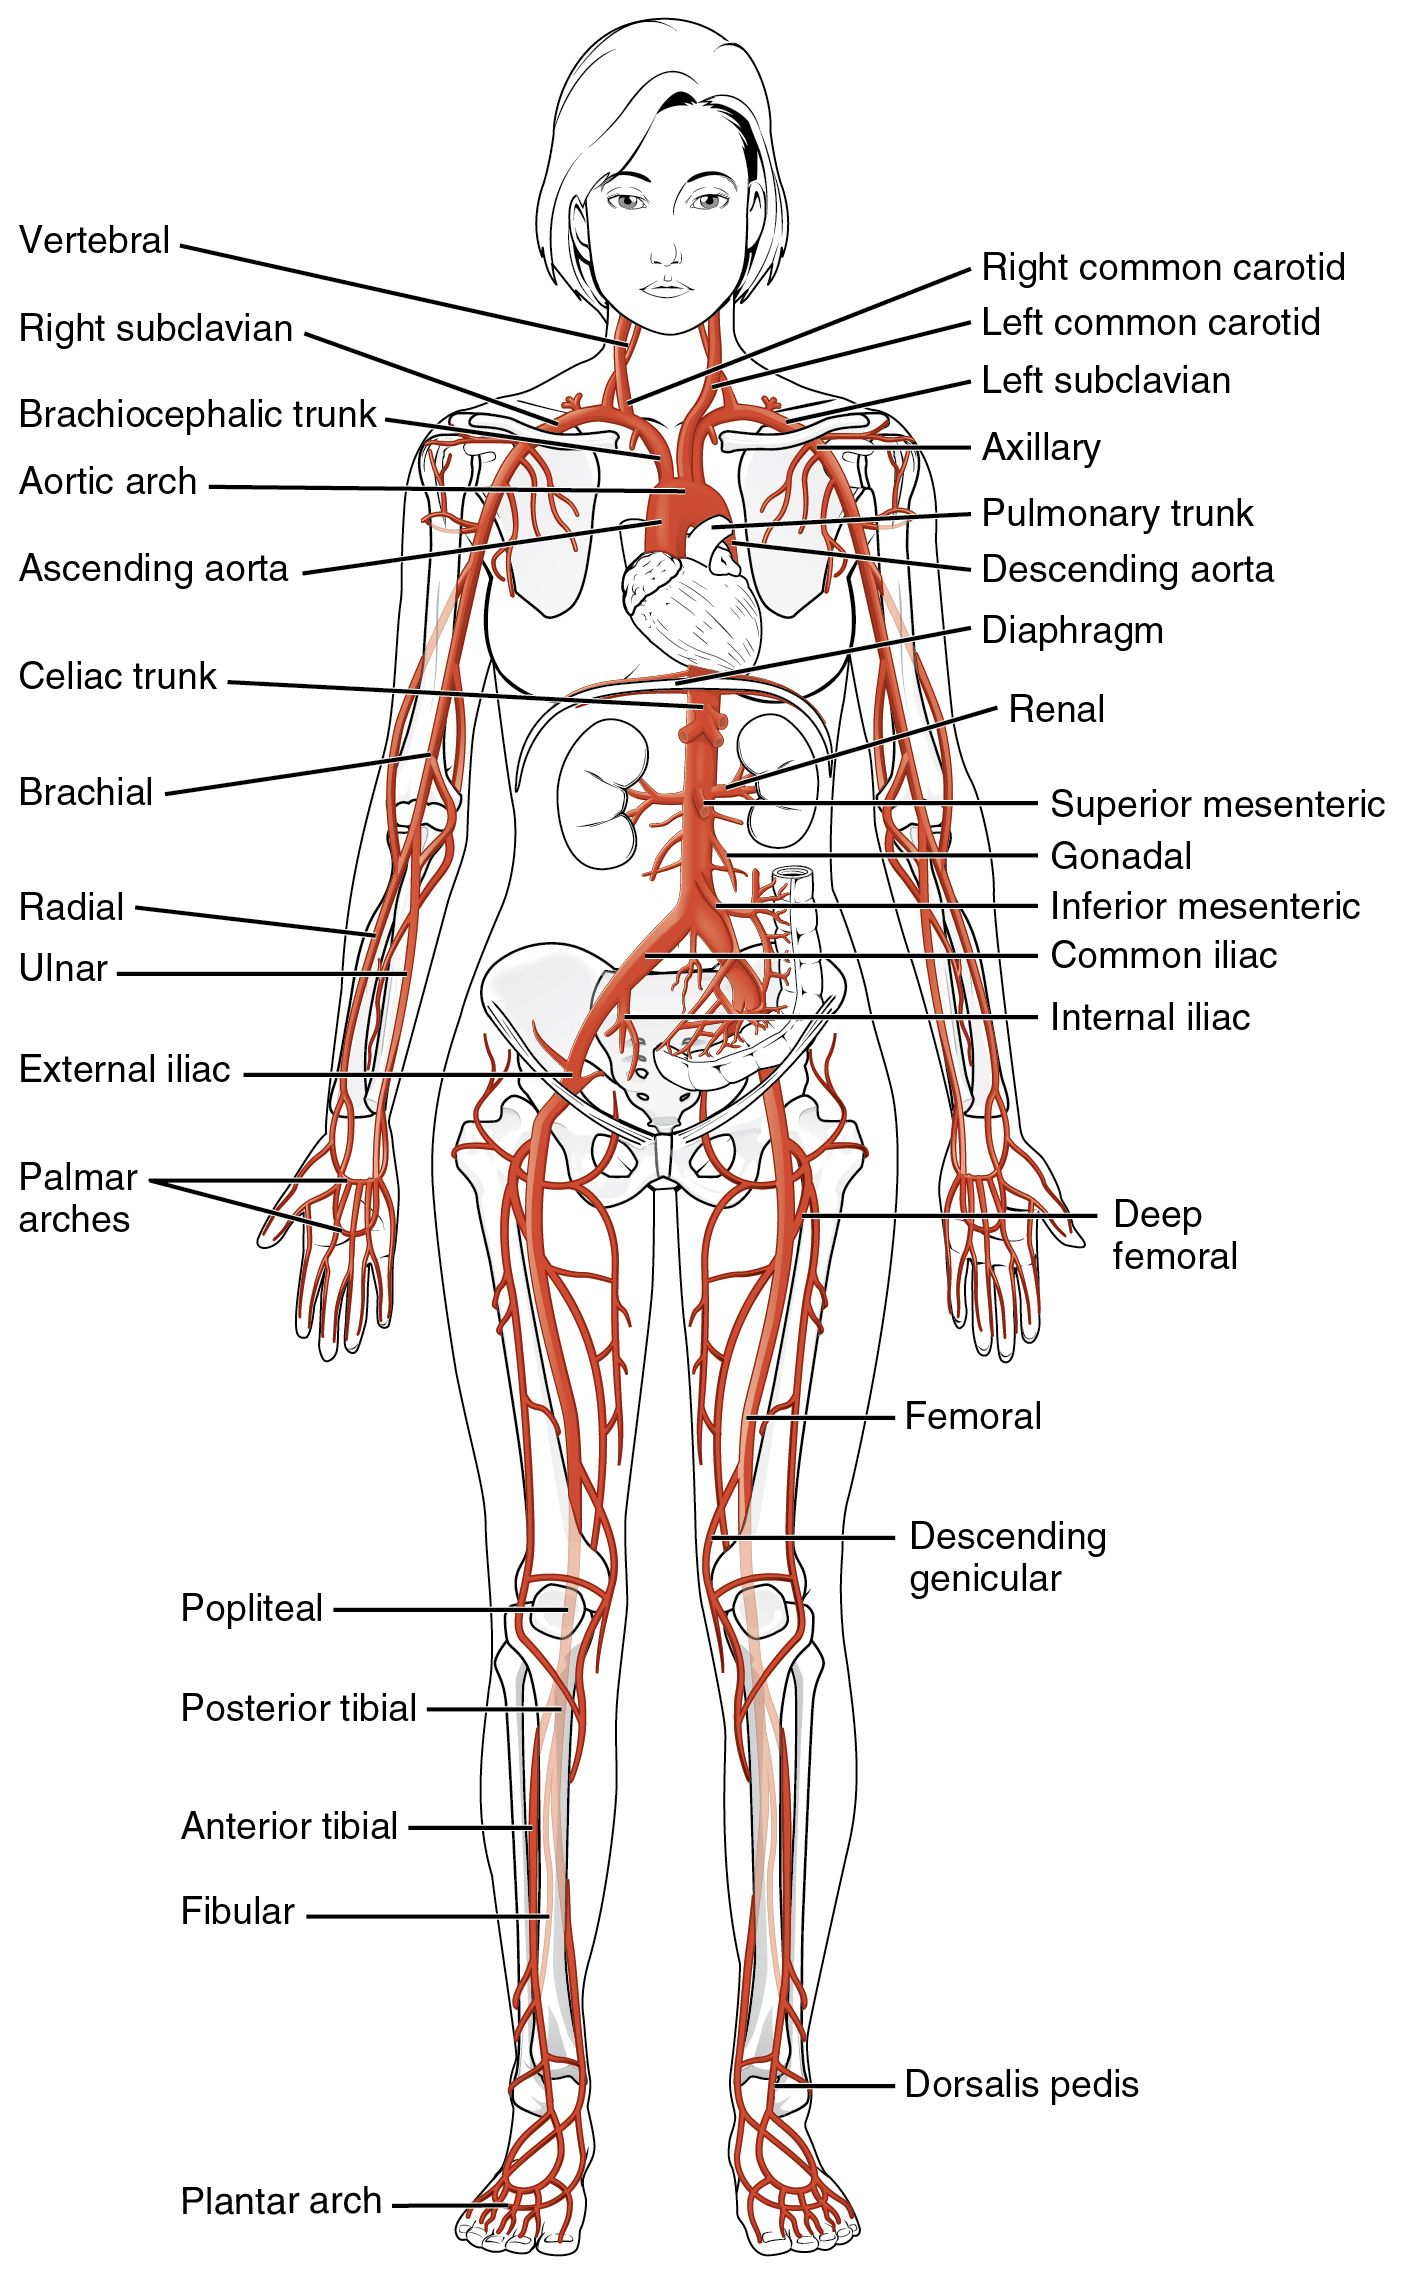 Realistic Heart Diagram Portable Generator Manual Transfer Switch Wiring Human Arteries Great Installation Of This Diagrams Shows The Major In Body School Rh Pinterest Com Anatomy